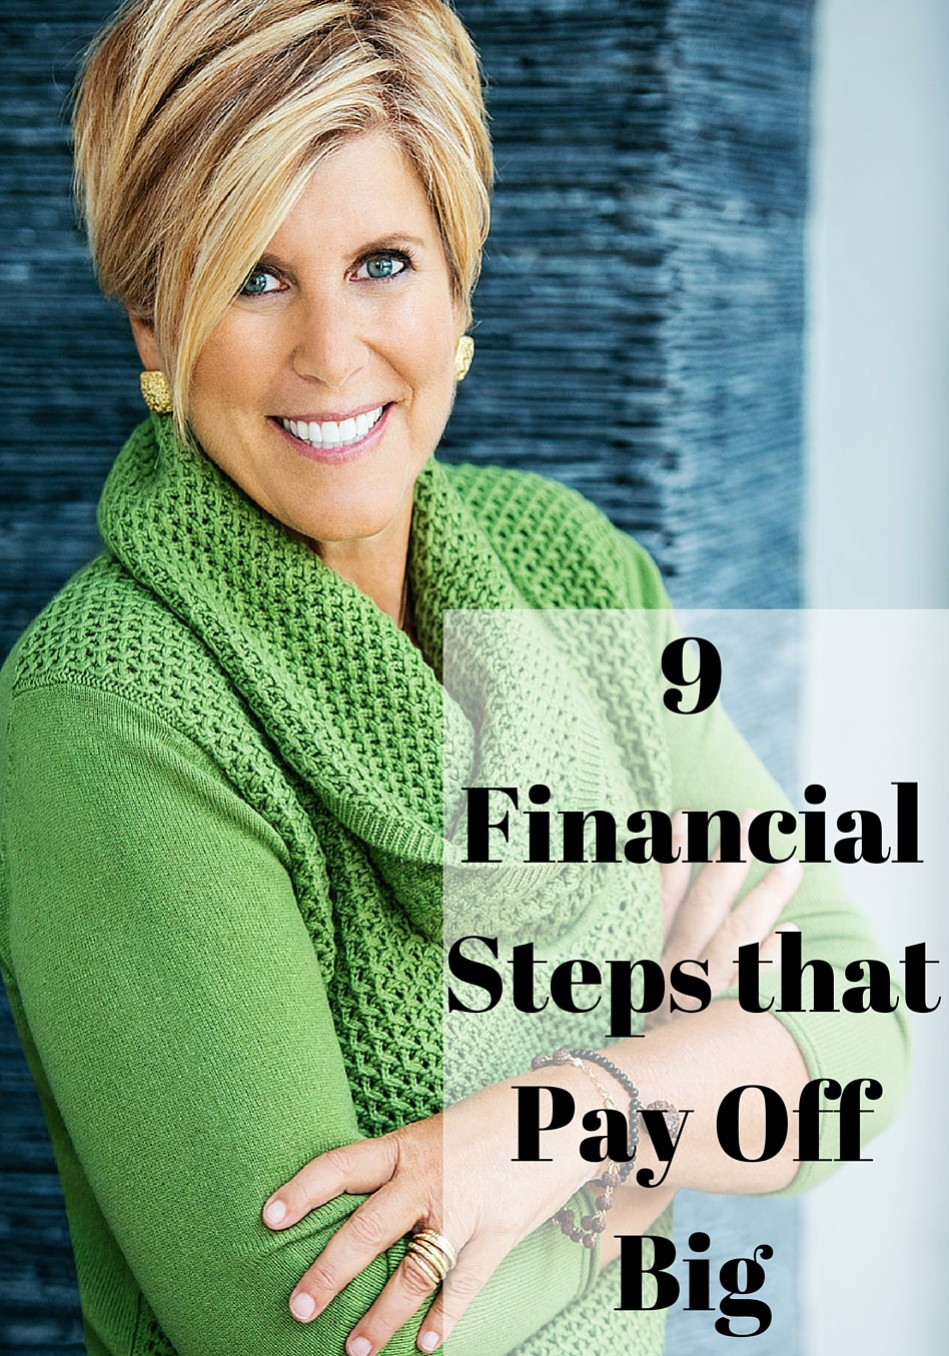 Suze orman 9 small financial steps that will pay off big suze orman solutioingenieria Choice Image